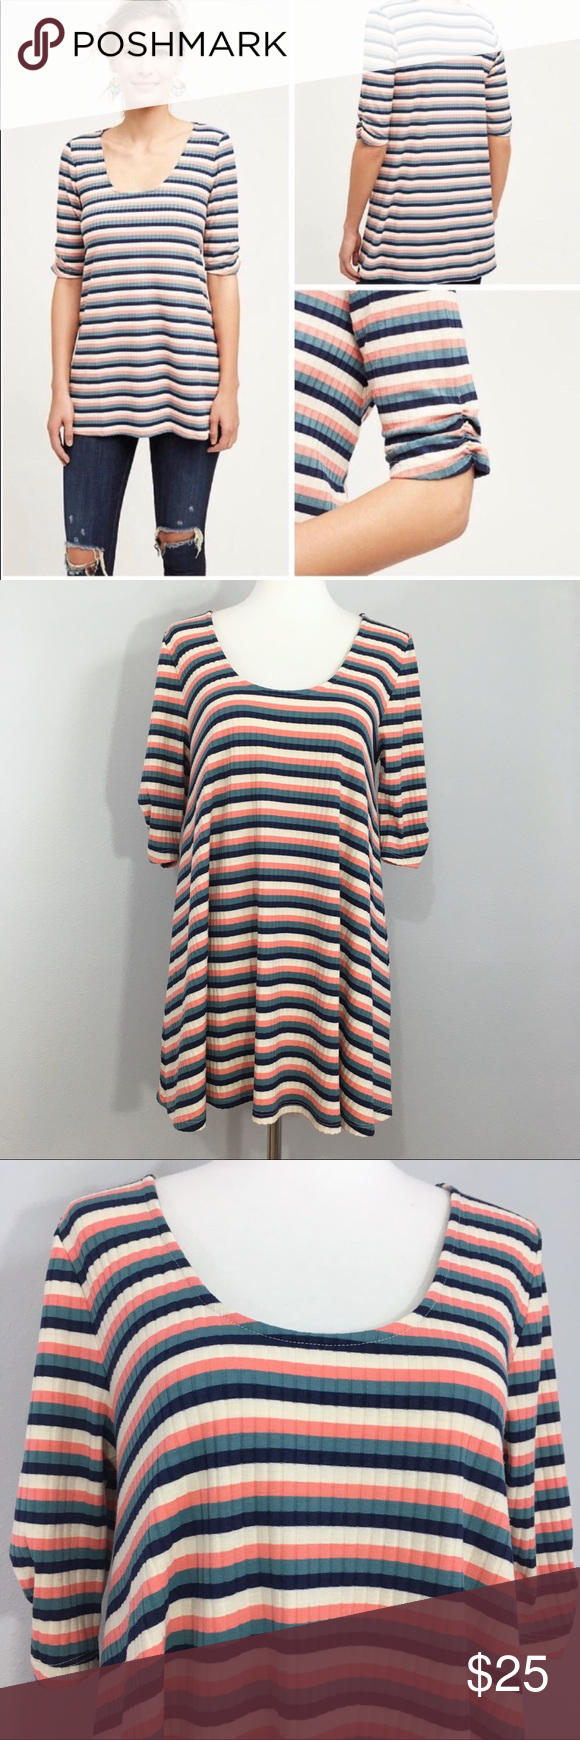 649368a13f8 Anthropologie Puella Cosima Striped Textured Tunic Beautiful striped swing  tunic top from Anthropologie brand Puella,